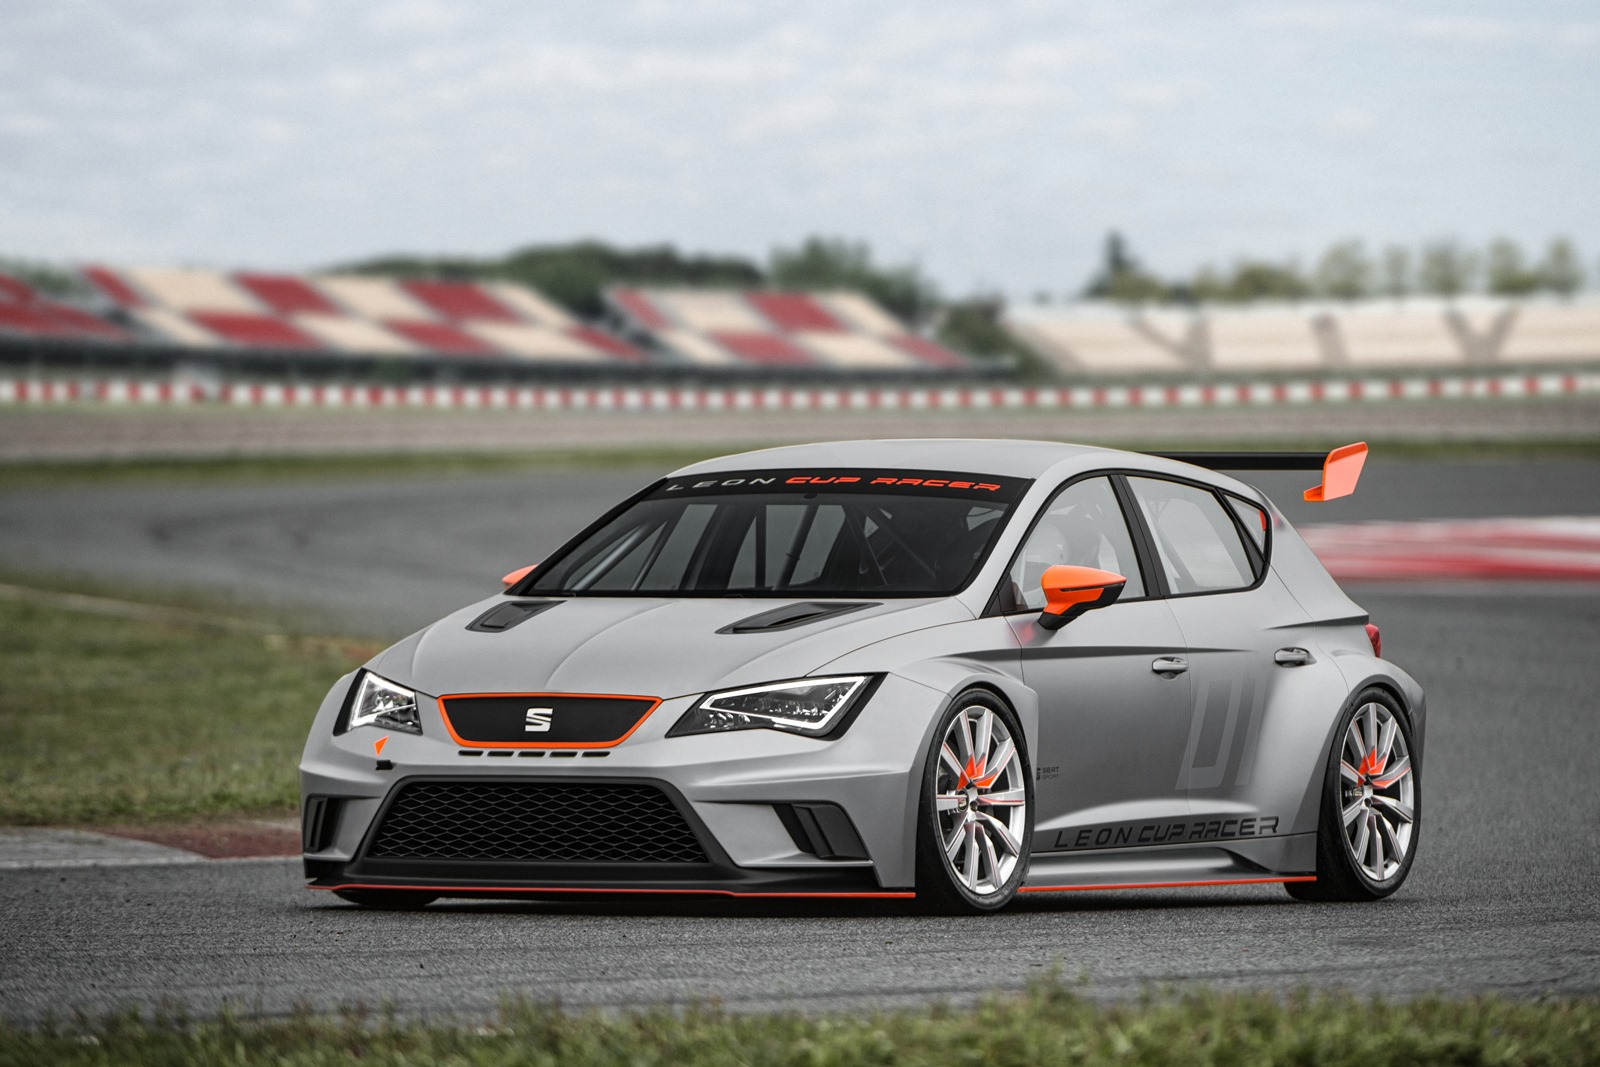 2013 seat leon cup racer race racing tuning q wallpaper 1600x1067 86592 wallpaperup. Black Bedroom Furniture Sets. Home Design Ideas